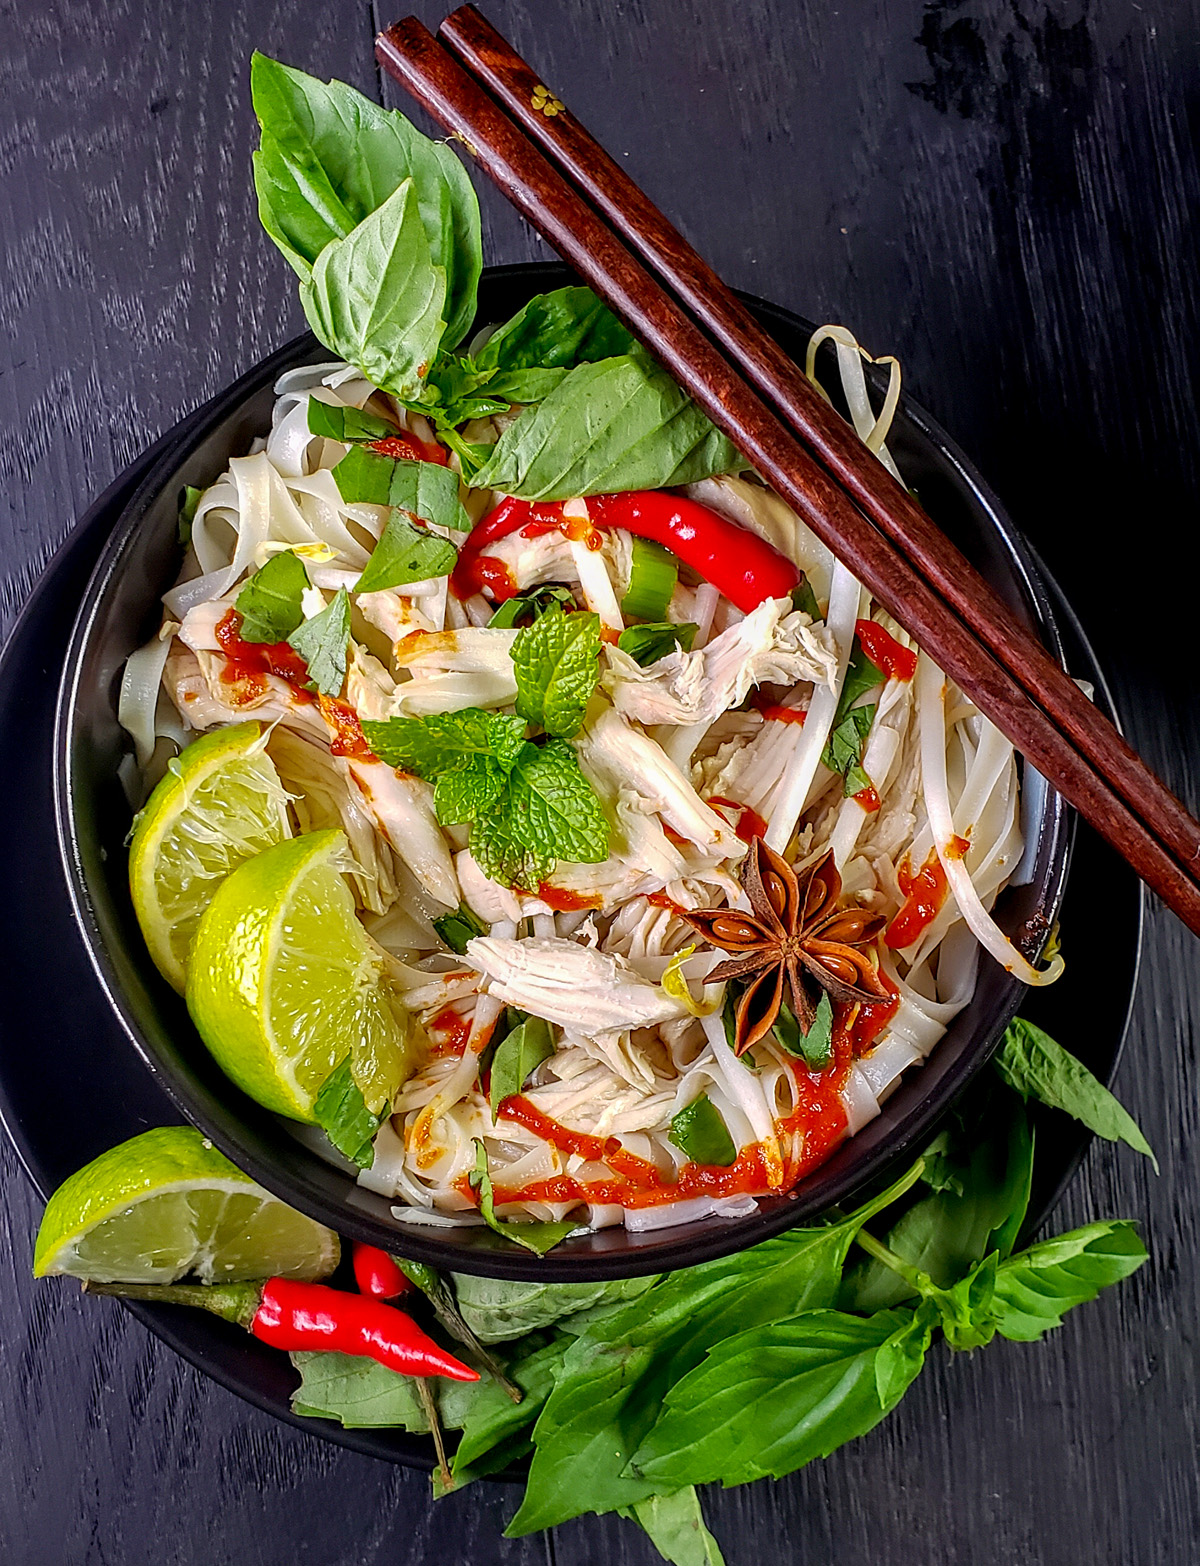 Vietnamese Pho Ga Recipe (Chicken Pho) in the Slow Cooker